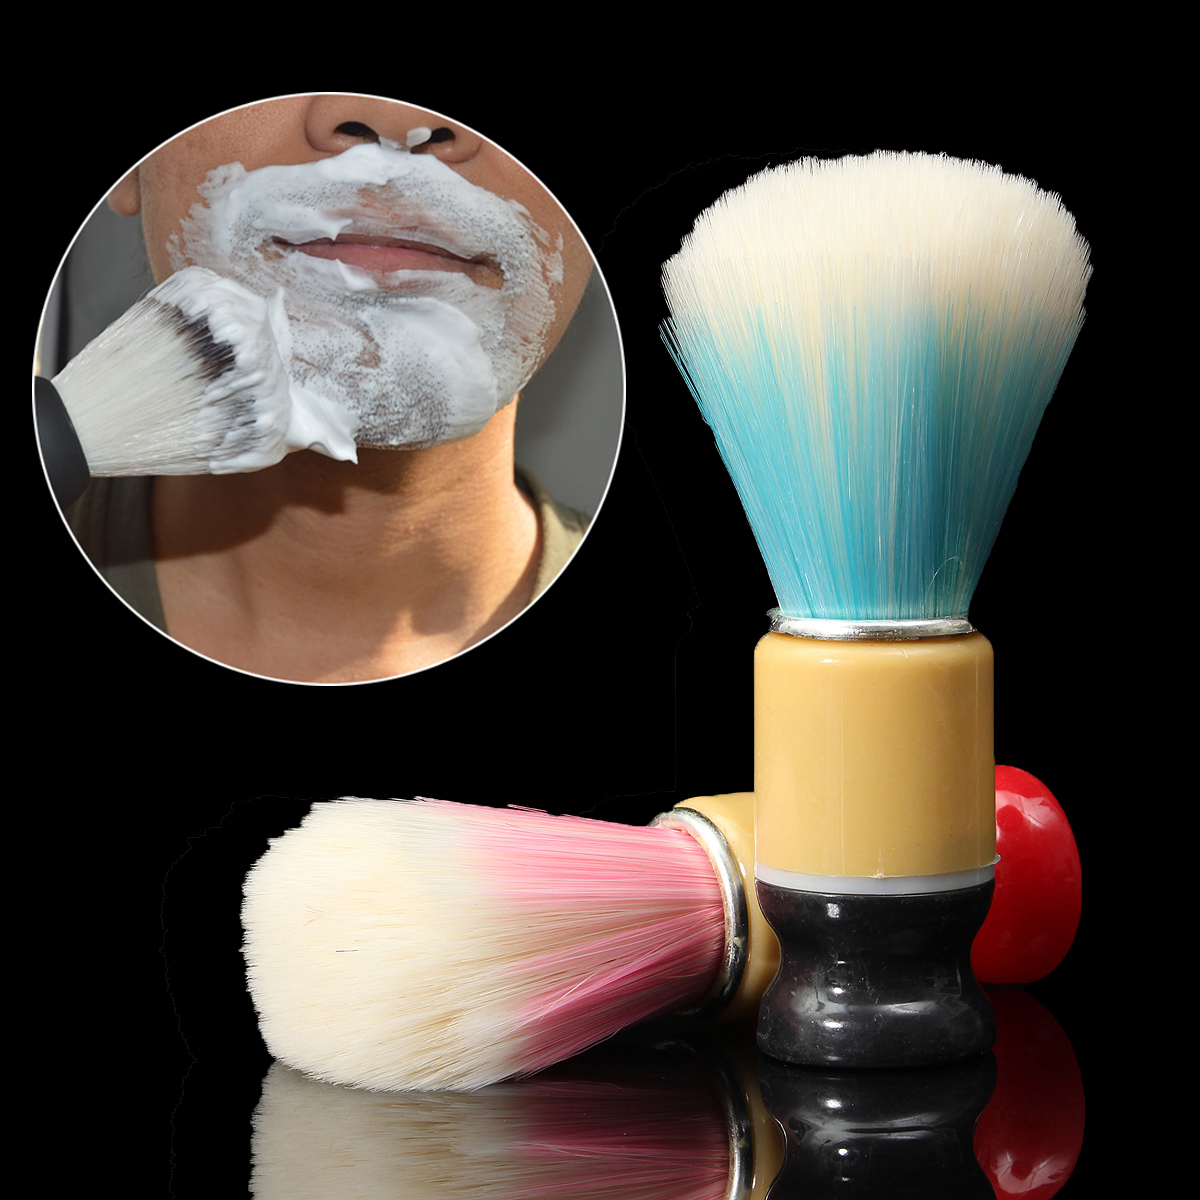 Men's Beard Hair Brush Brushes for Shaving Cream Soap Foam Producing